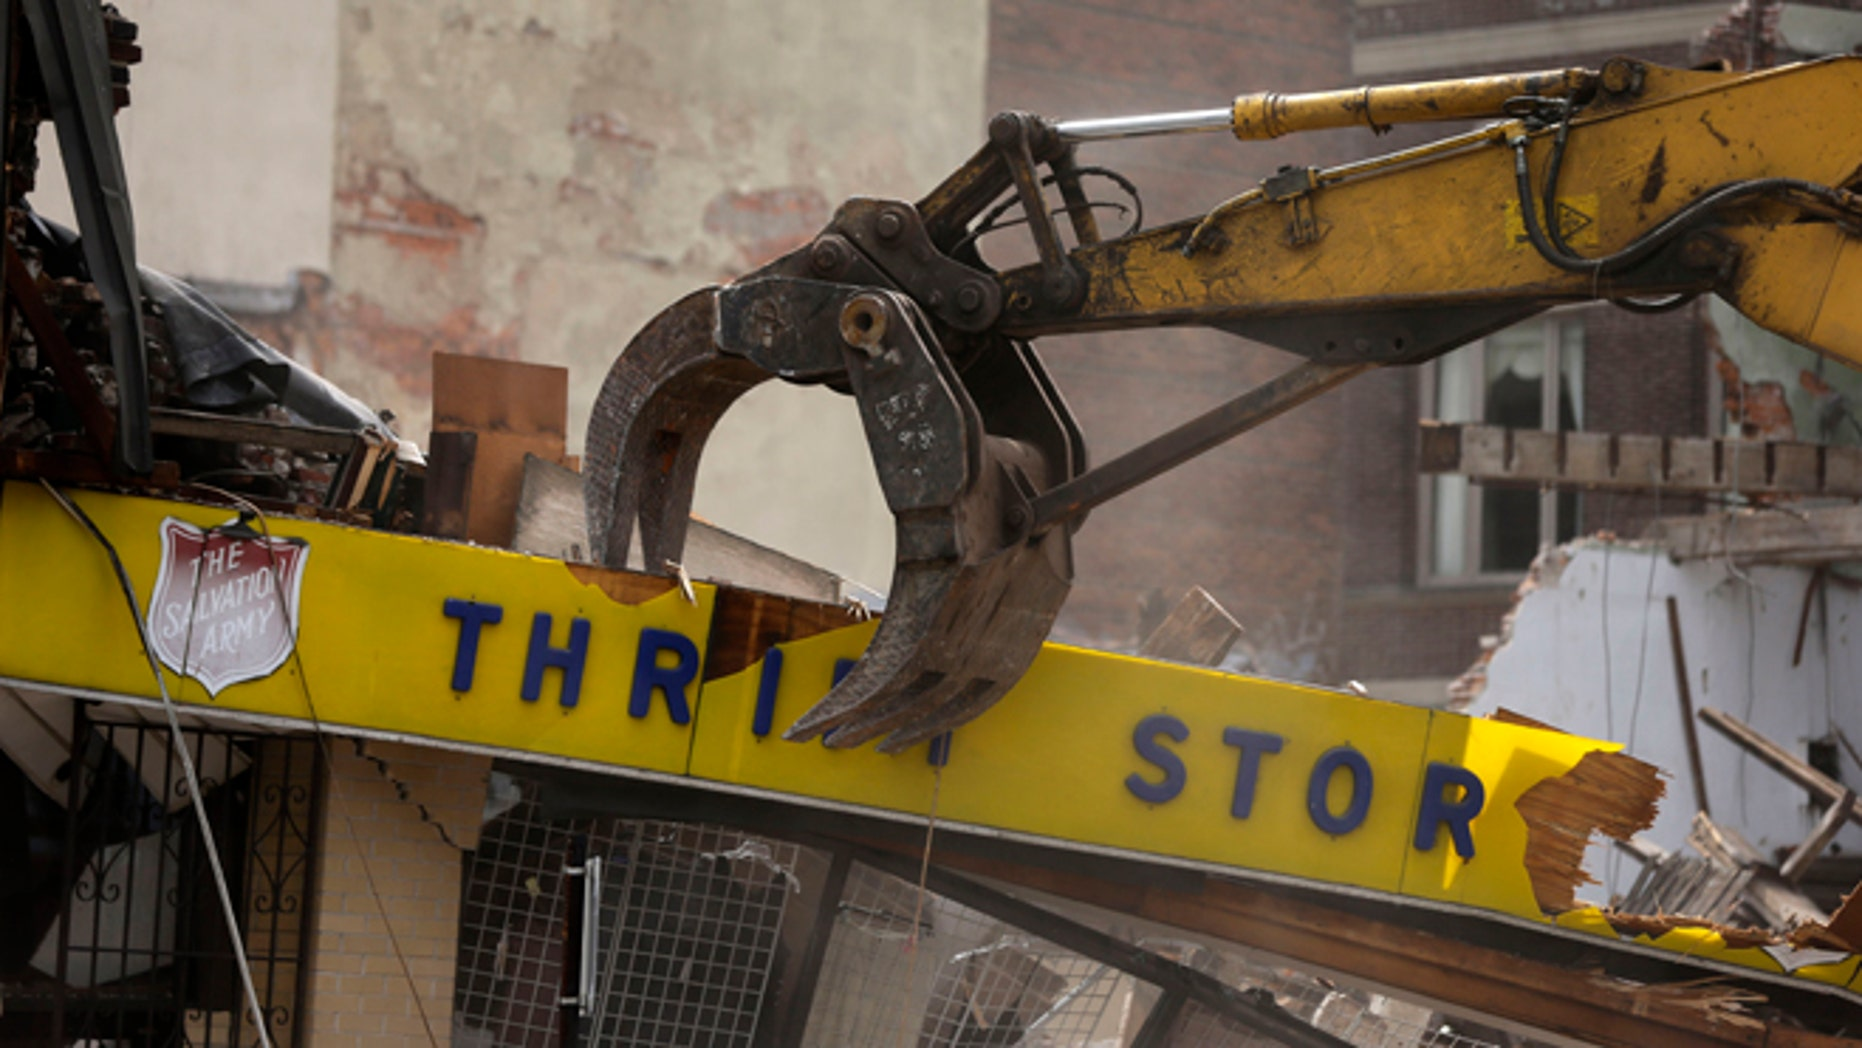 June 6, 2013: A Salvation Army Thrift store is demolished in the aftermath of a building collaps in Philadelphia.